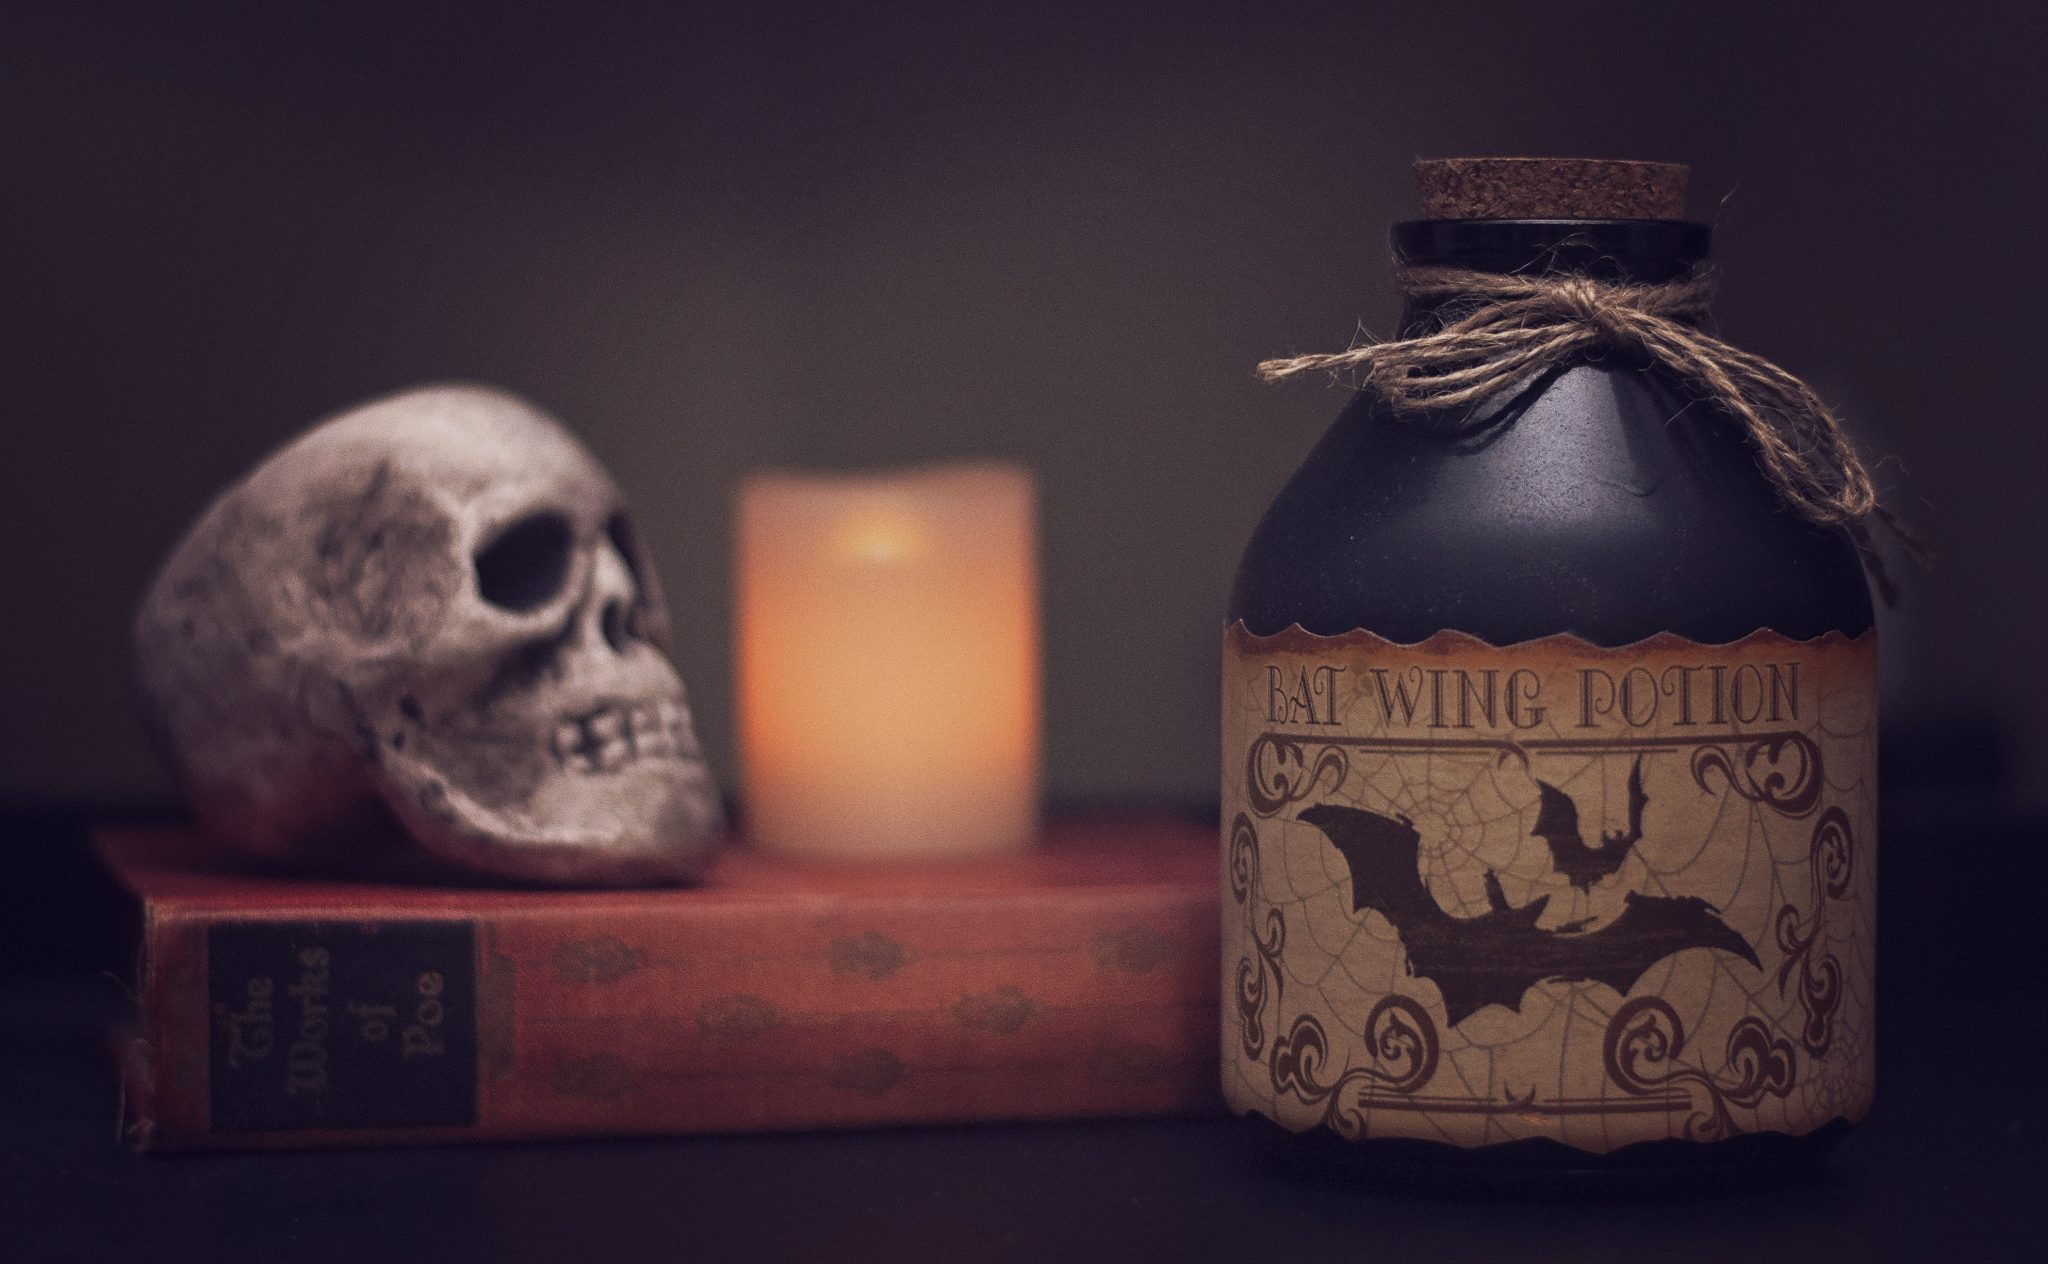 Book, skull, potion and candle